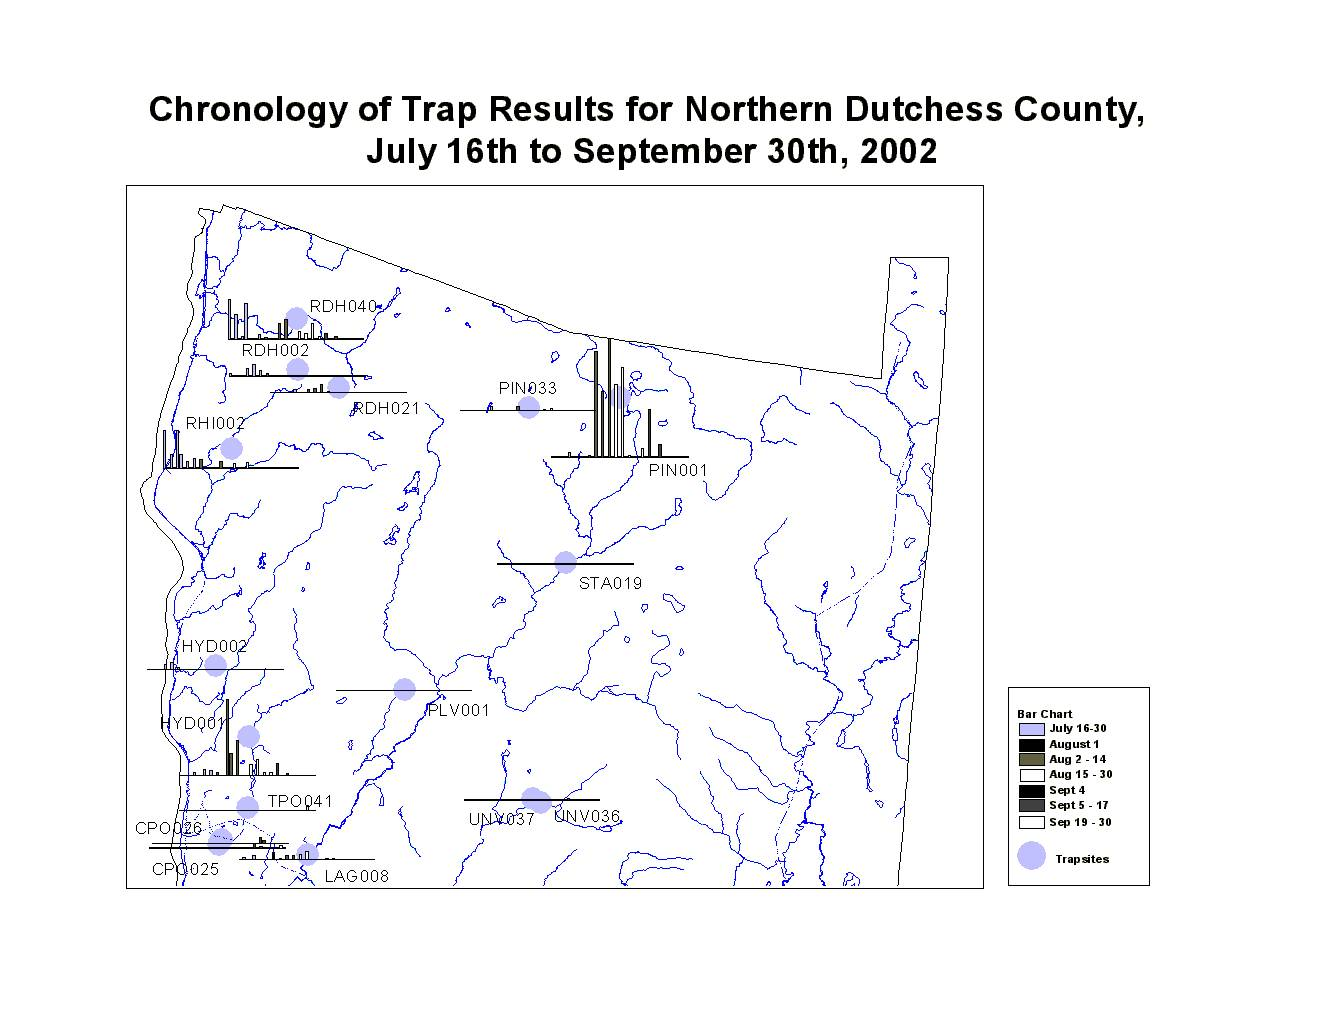 The Northernmost traps in the County